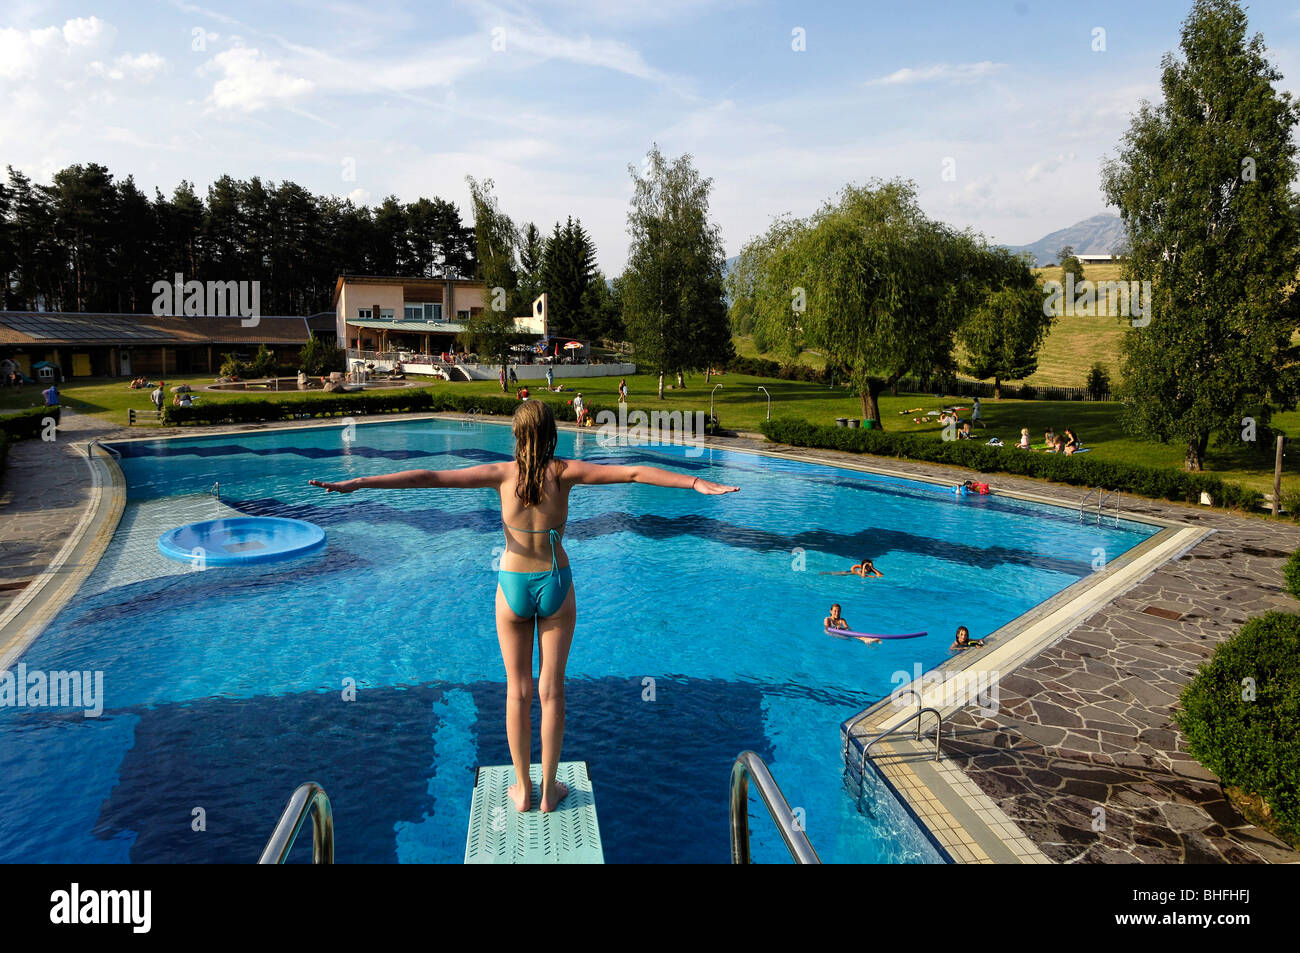 A girl standing on the diving board of the swimming pool at ...